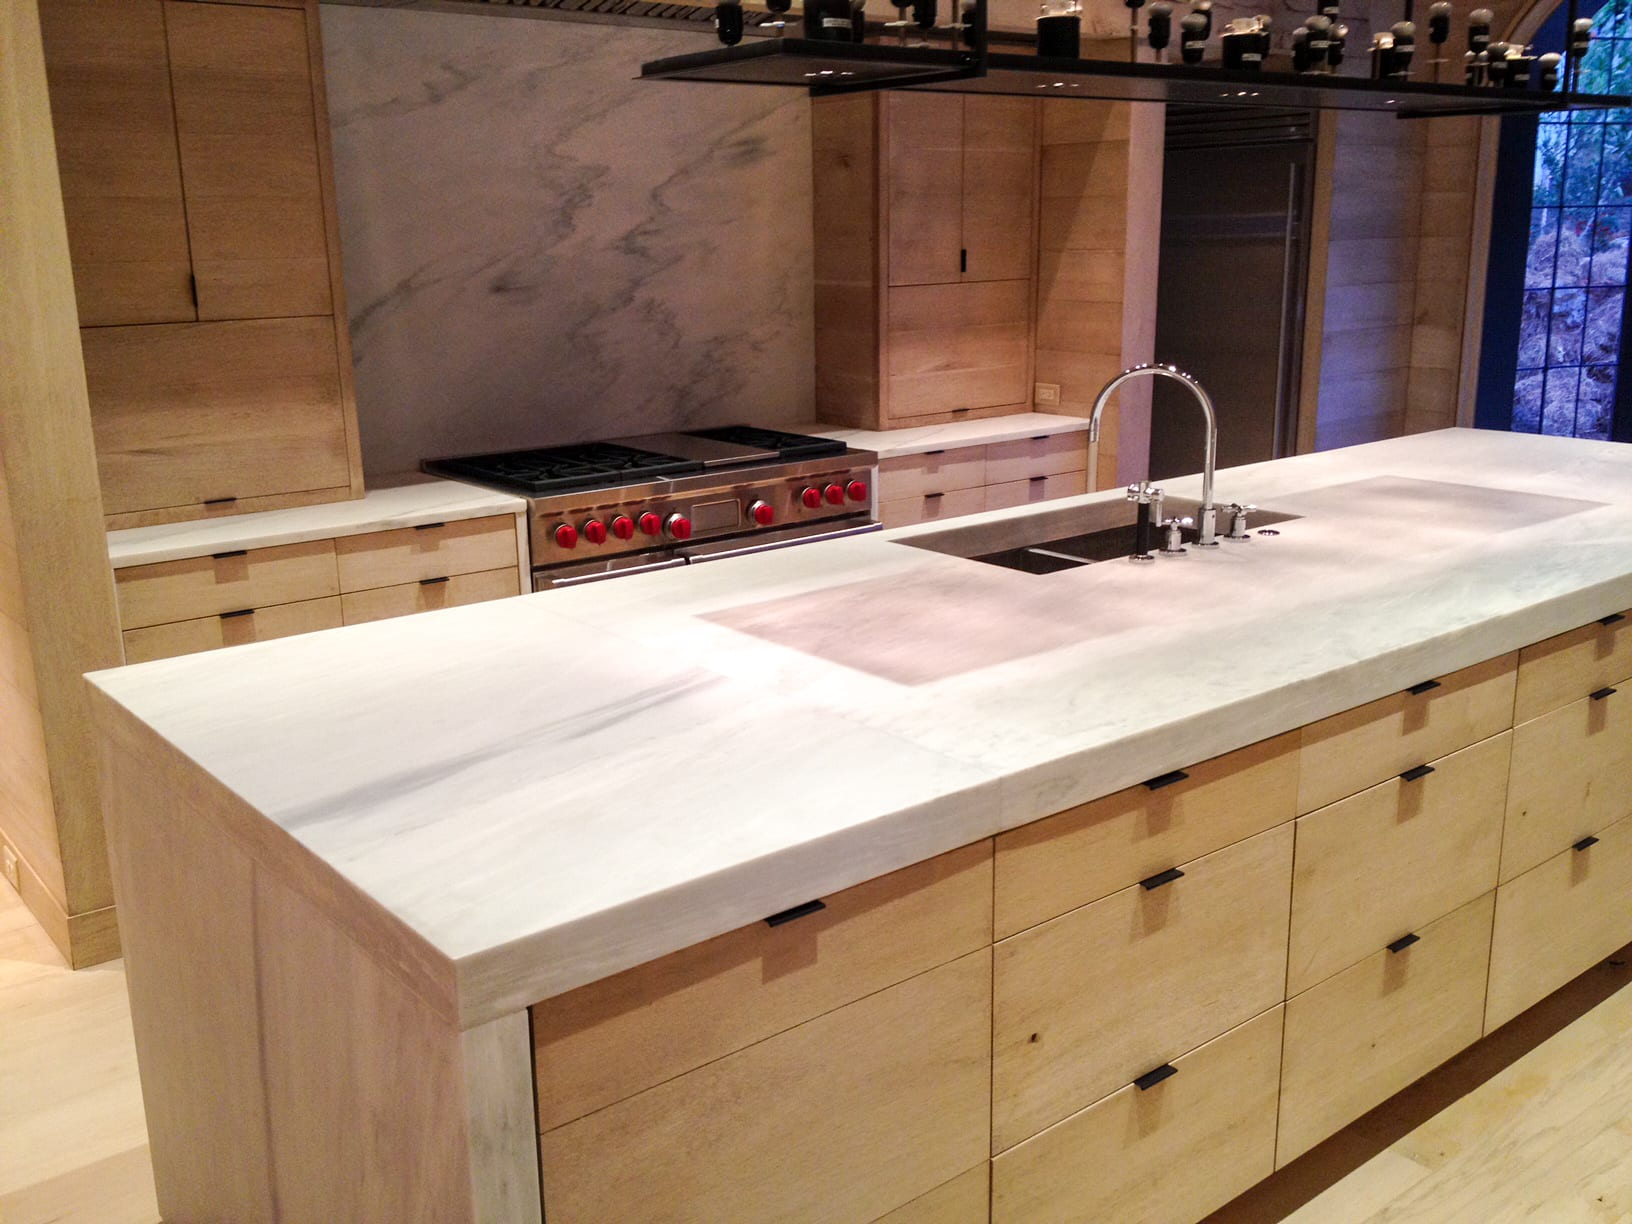 All Wood Kitchen with stainless steel appliances close up view